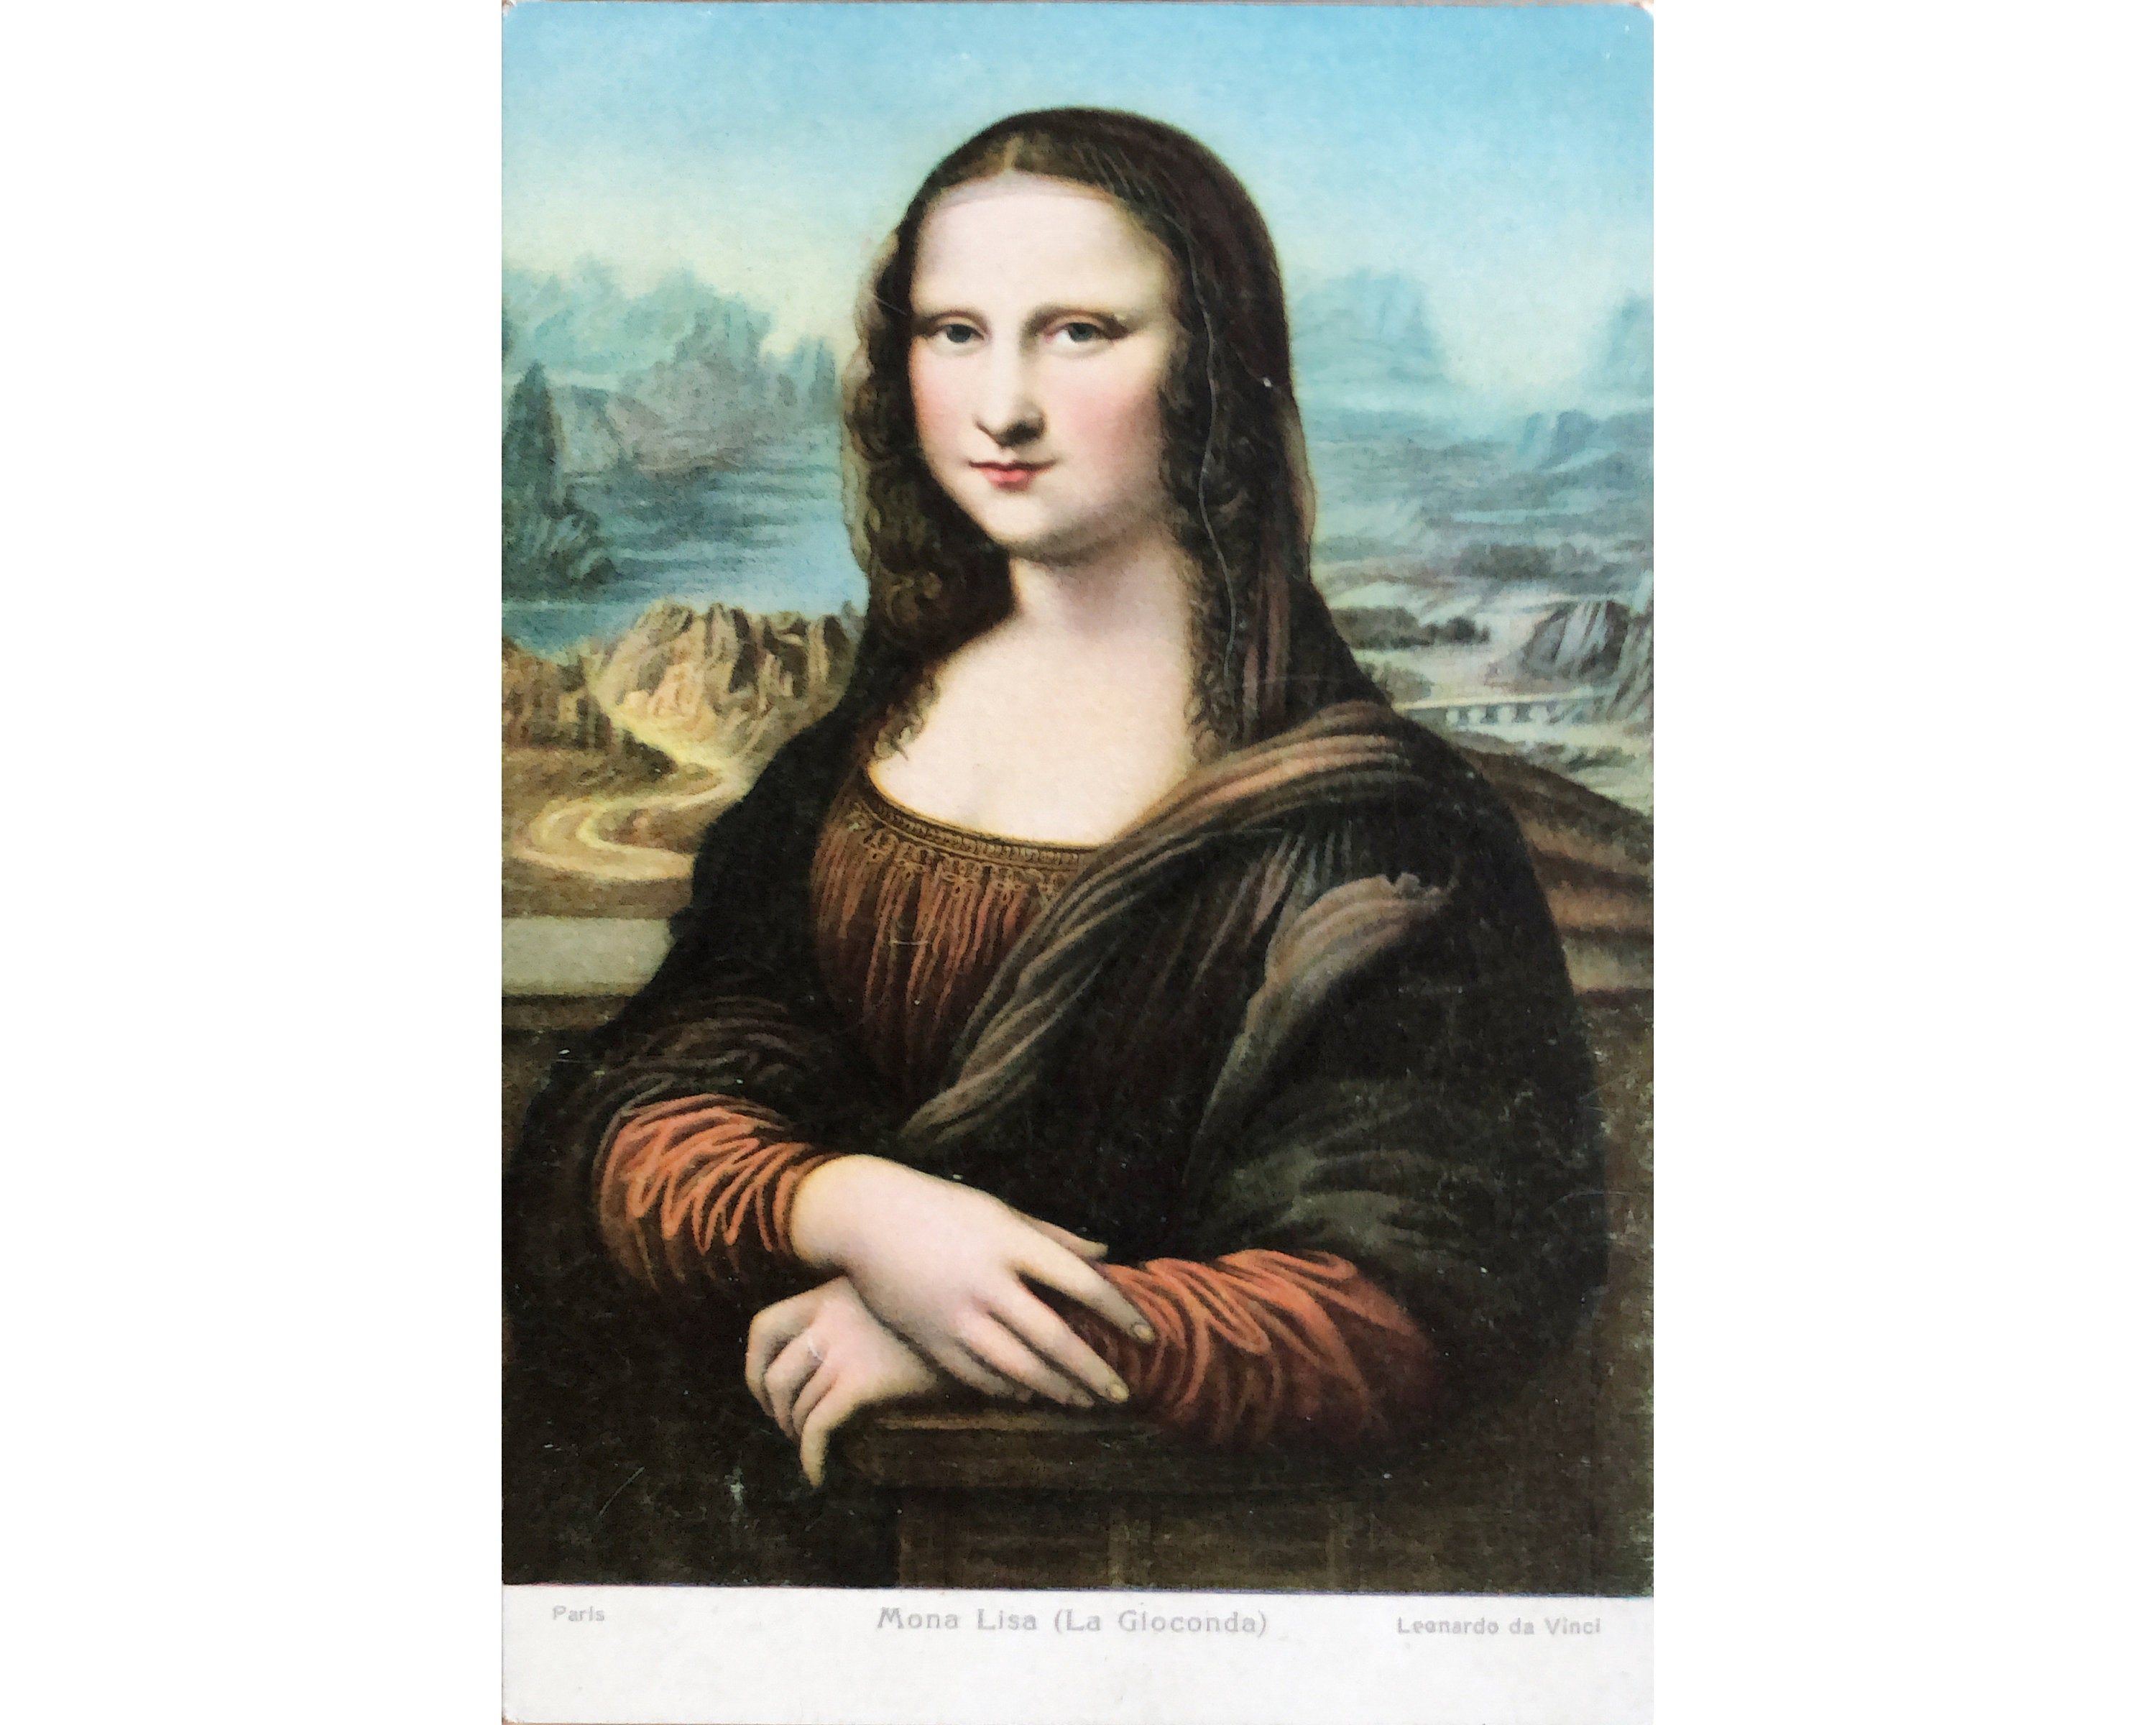 Mona Lisa Stengel Vintage Postcard La Gioconda Leonardo Da Vinci Antique Post Card Chromolithograph Mona Lisa Antique Postcard